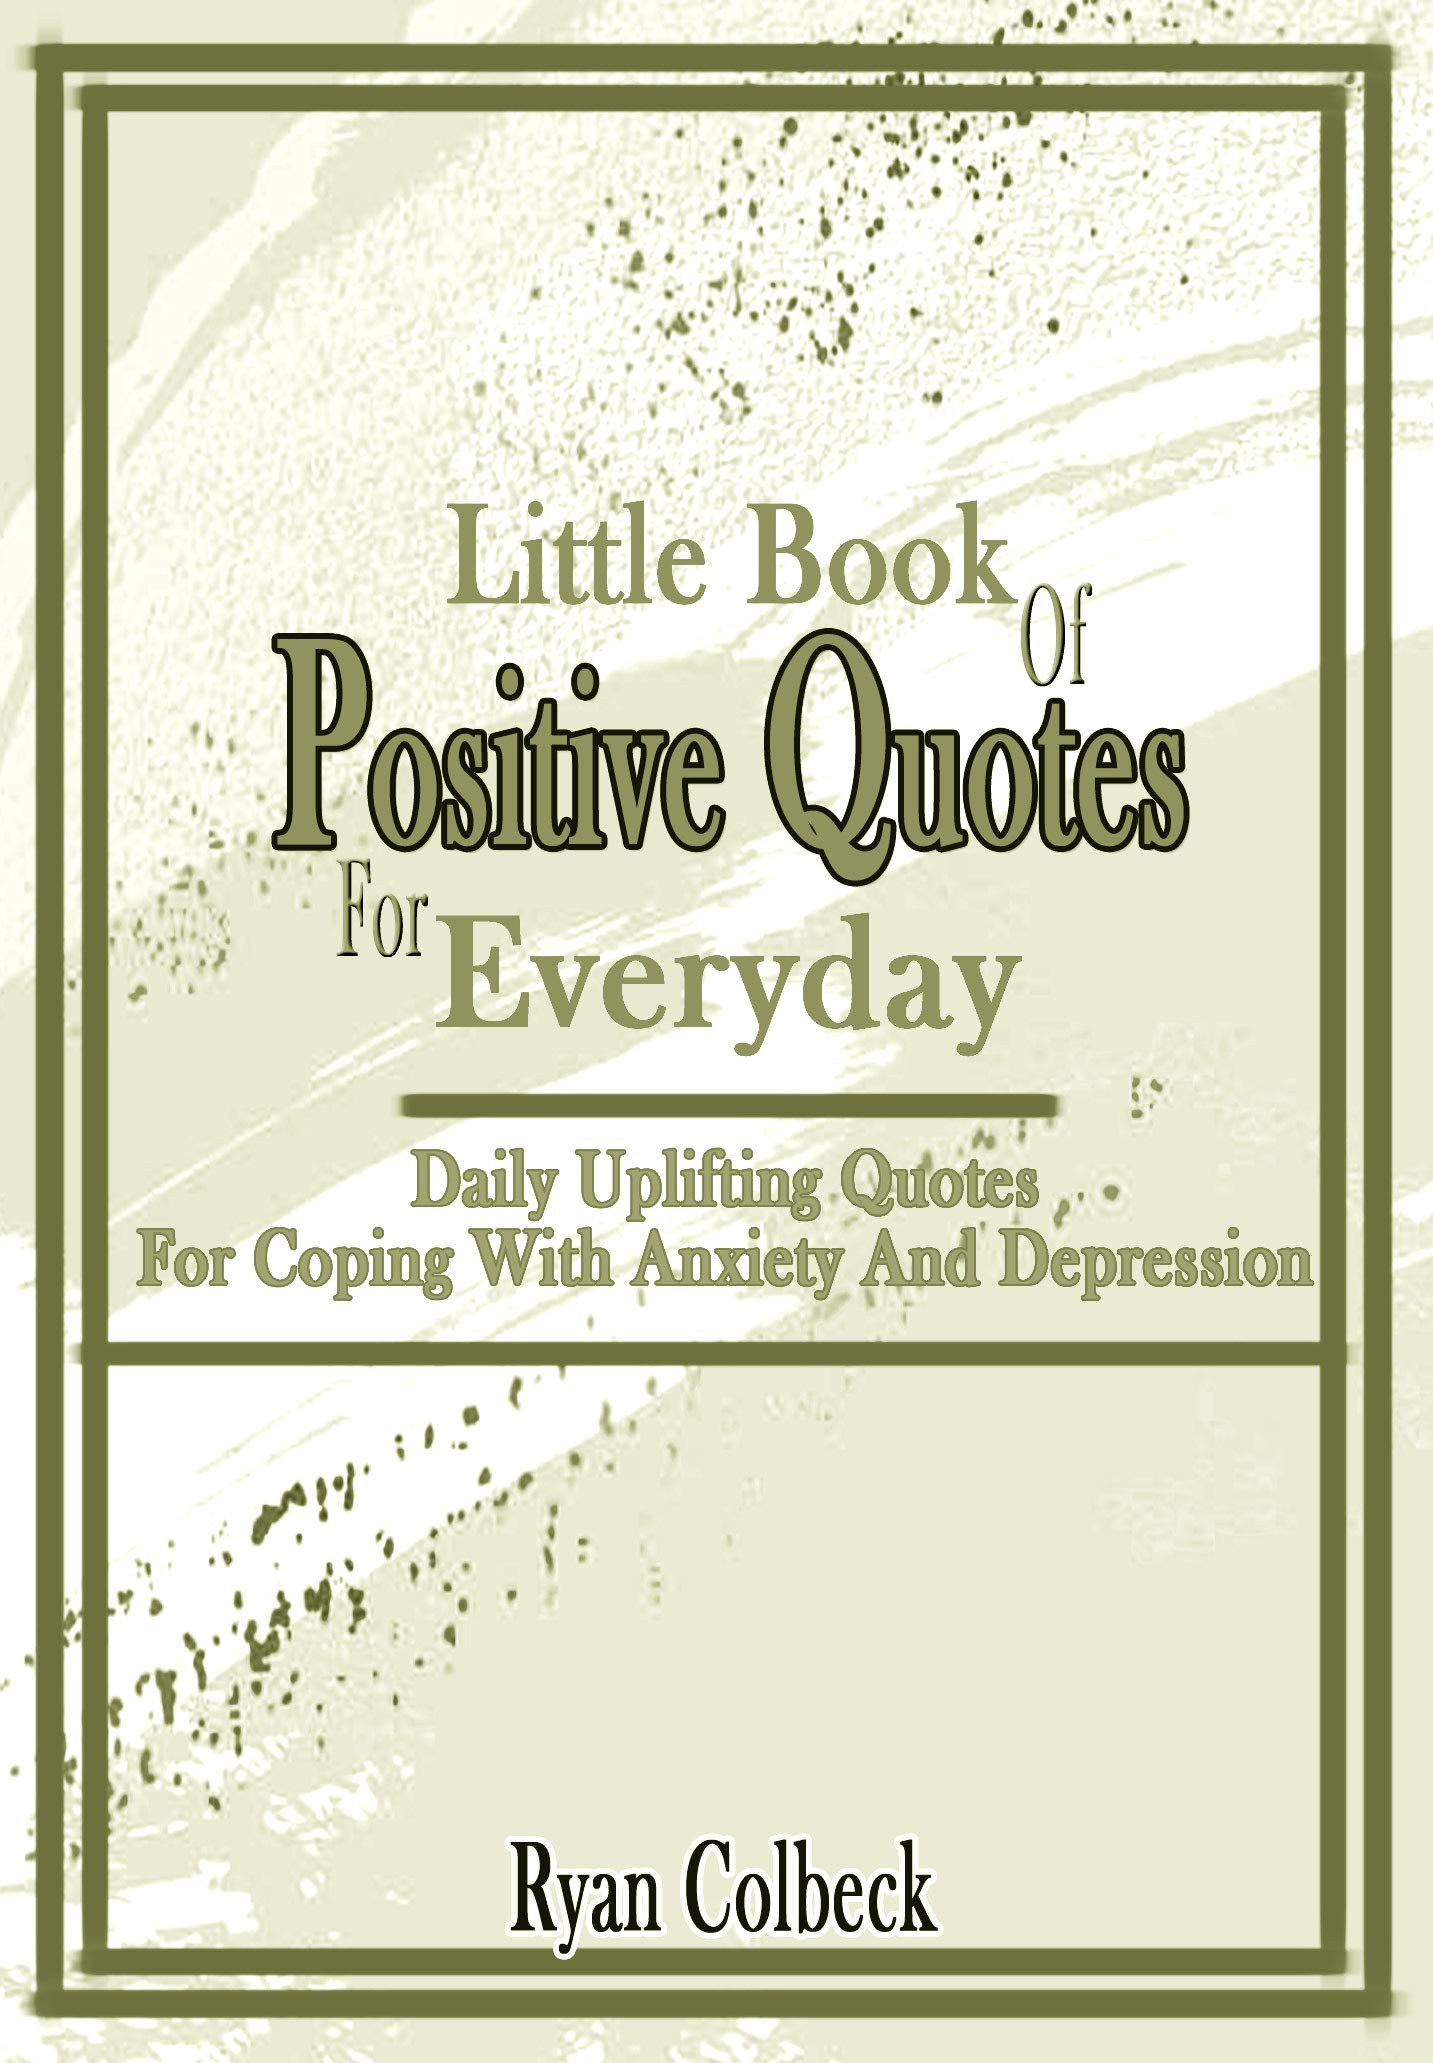 Little Book Of Positive Quotes For Everyday : Daily Uplifting Quotes For Coping With Anxiety And Depression